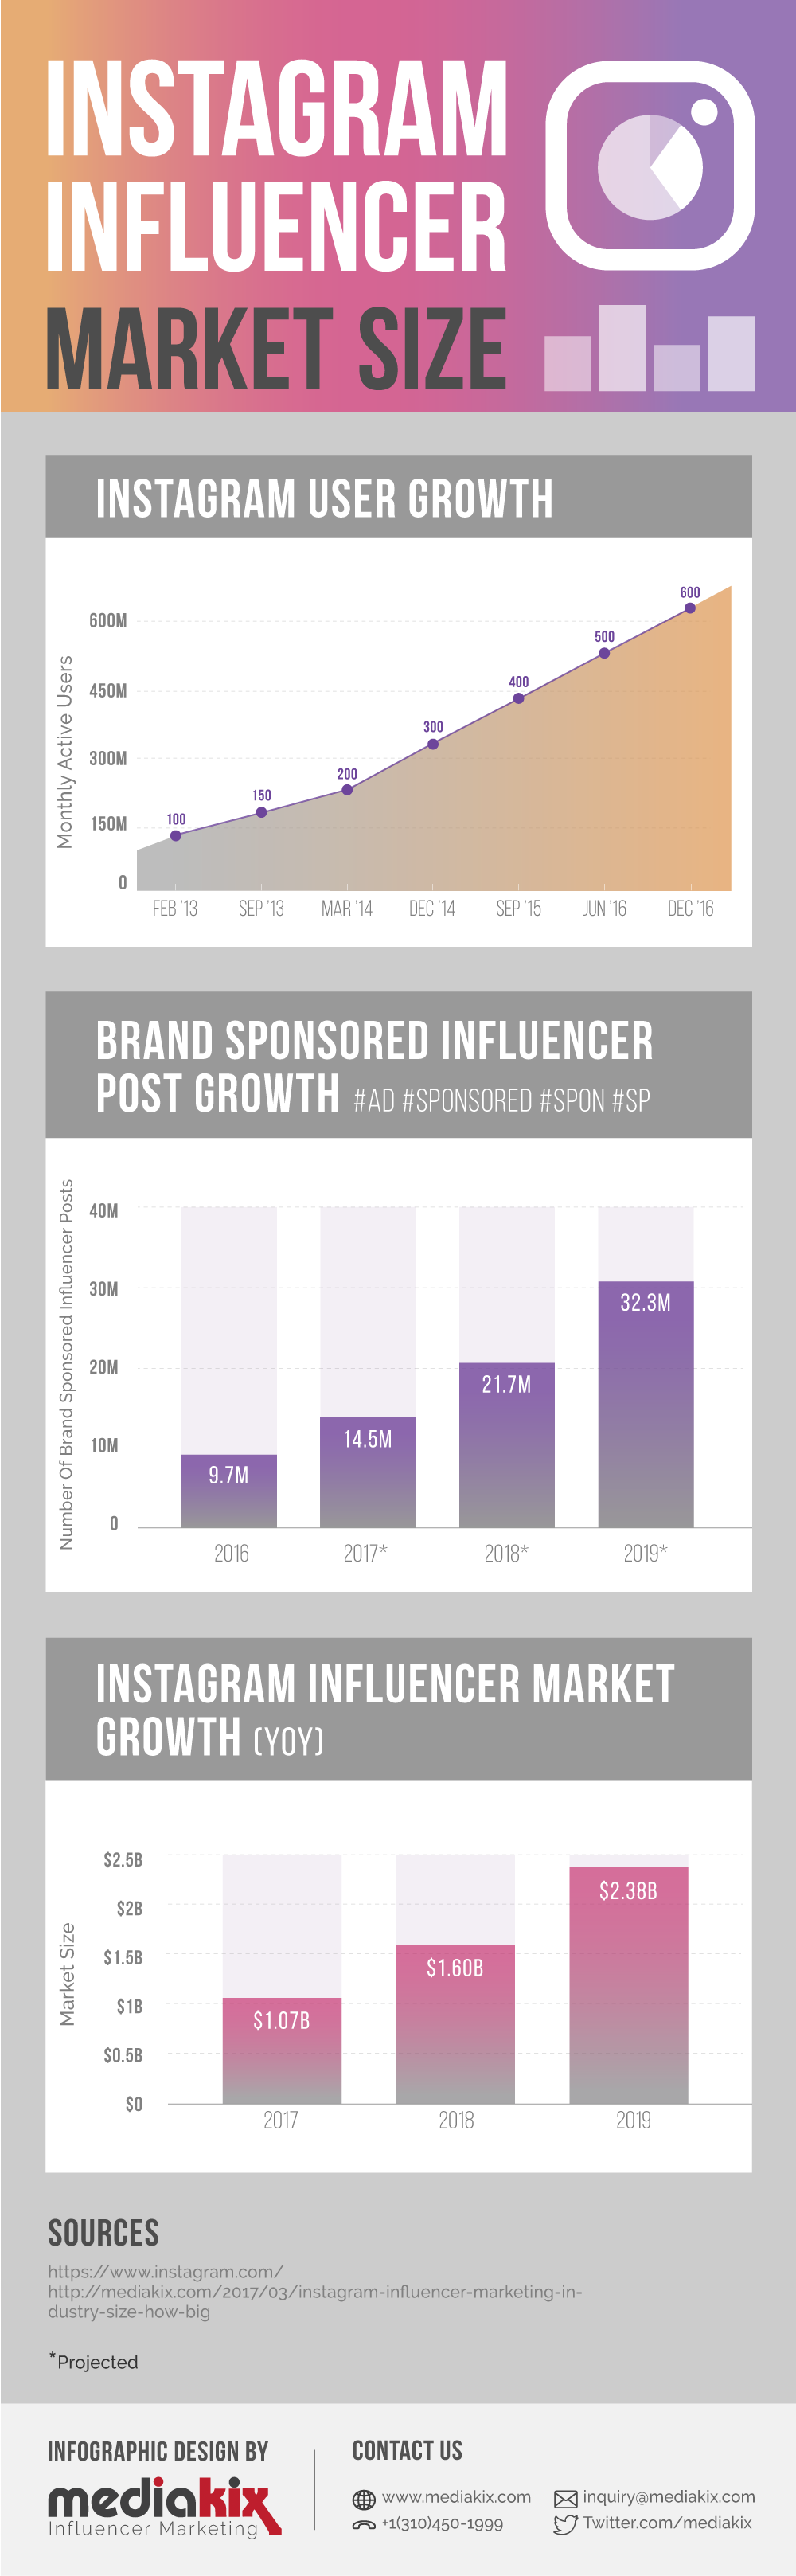 Instagram Influencer Marketing Infographic